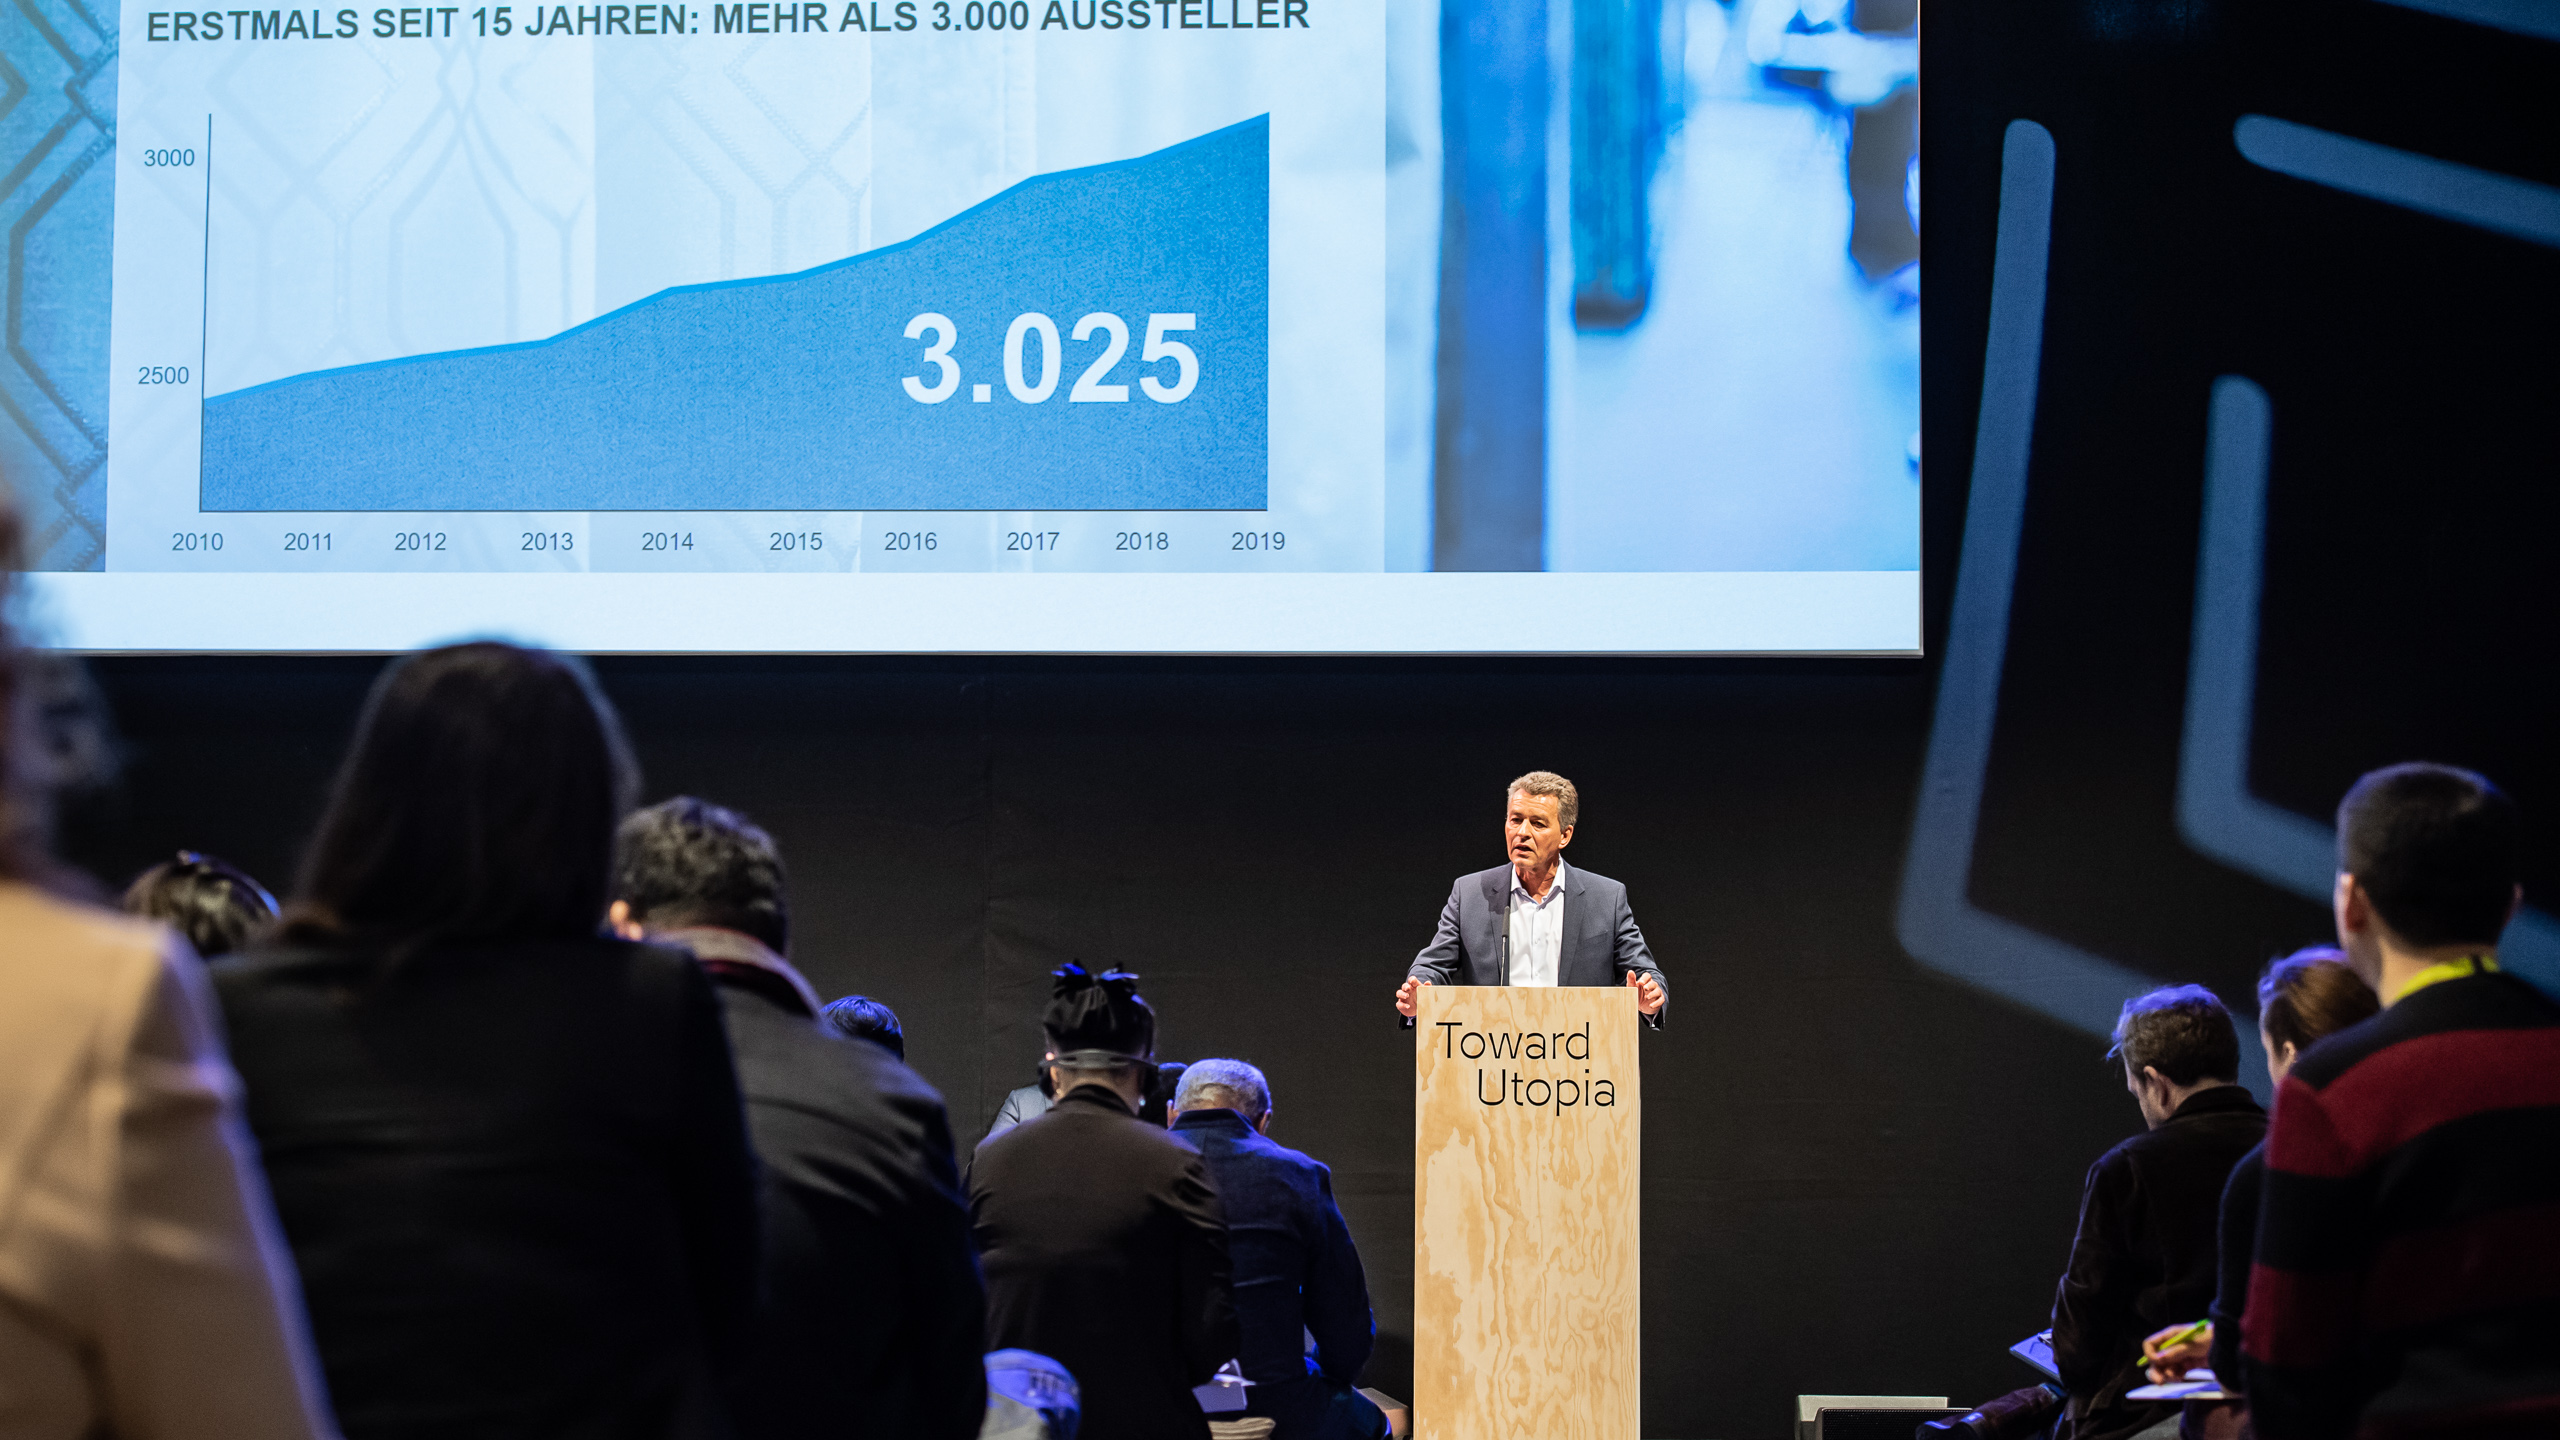 Press conference, Detlef Braun, Member of the executive Board, Messe Frankfurt GmbH